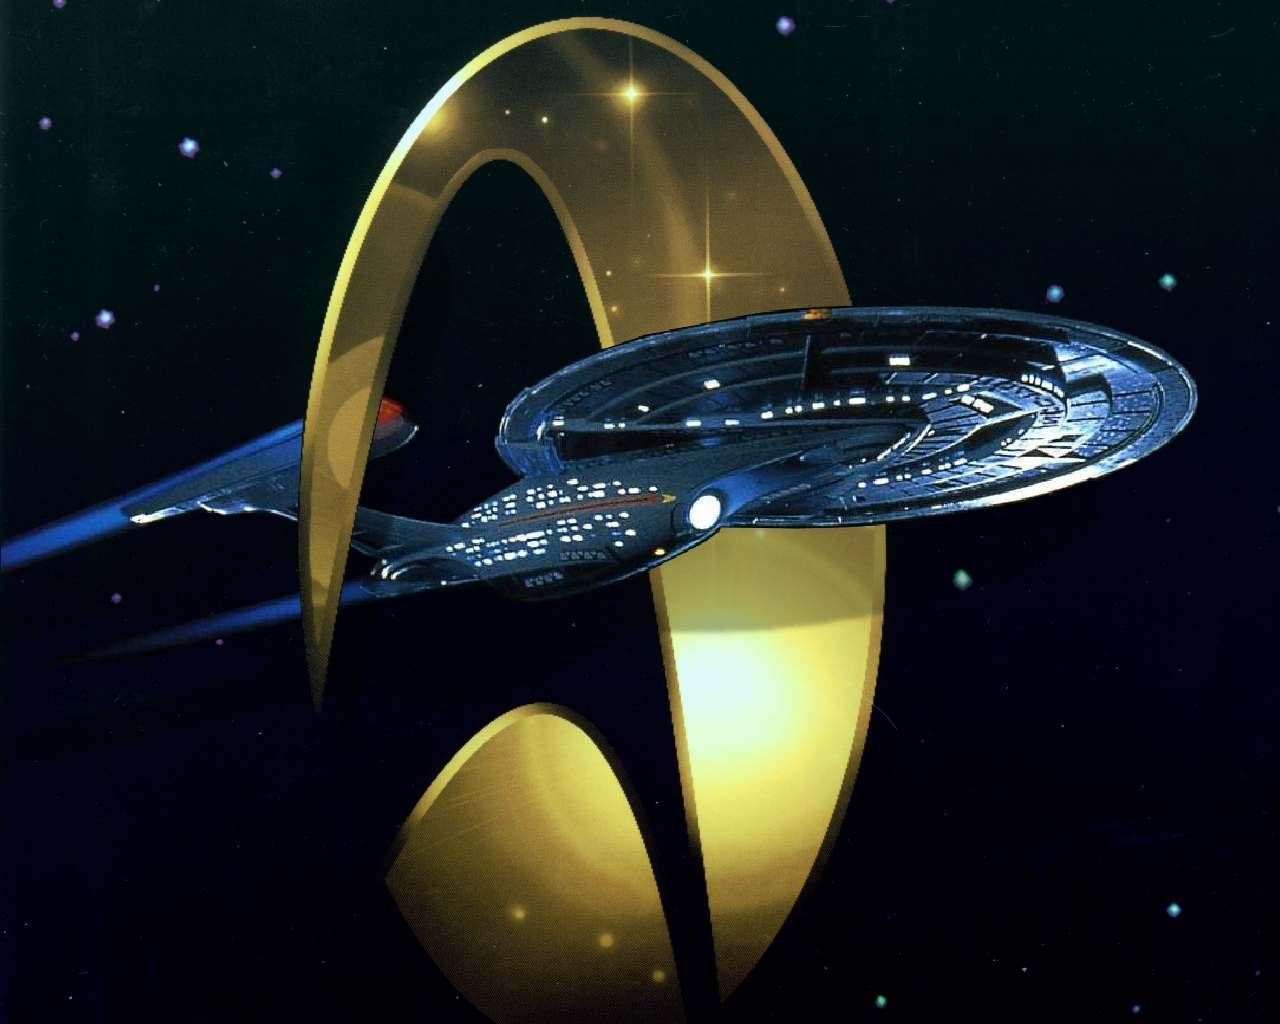 star trek the next generation images enterprise hd wallpaper and